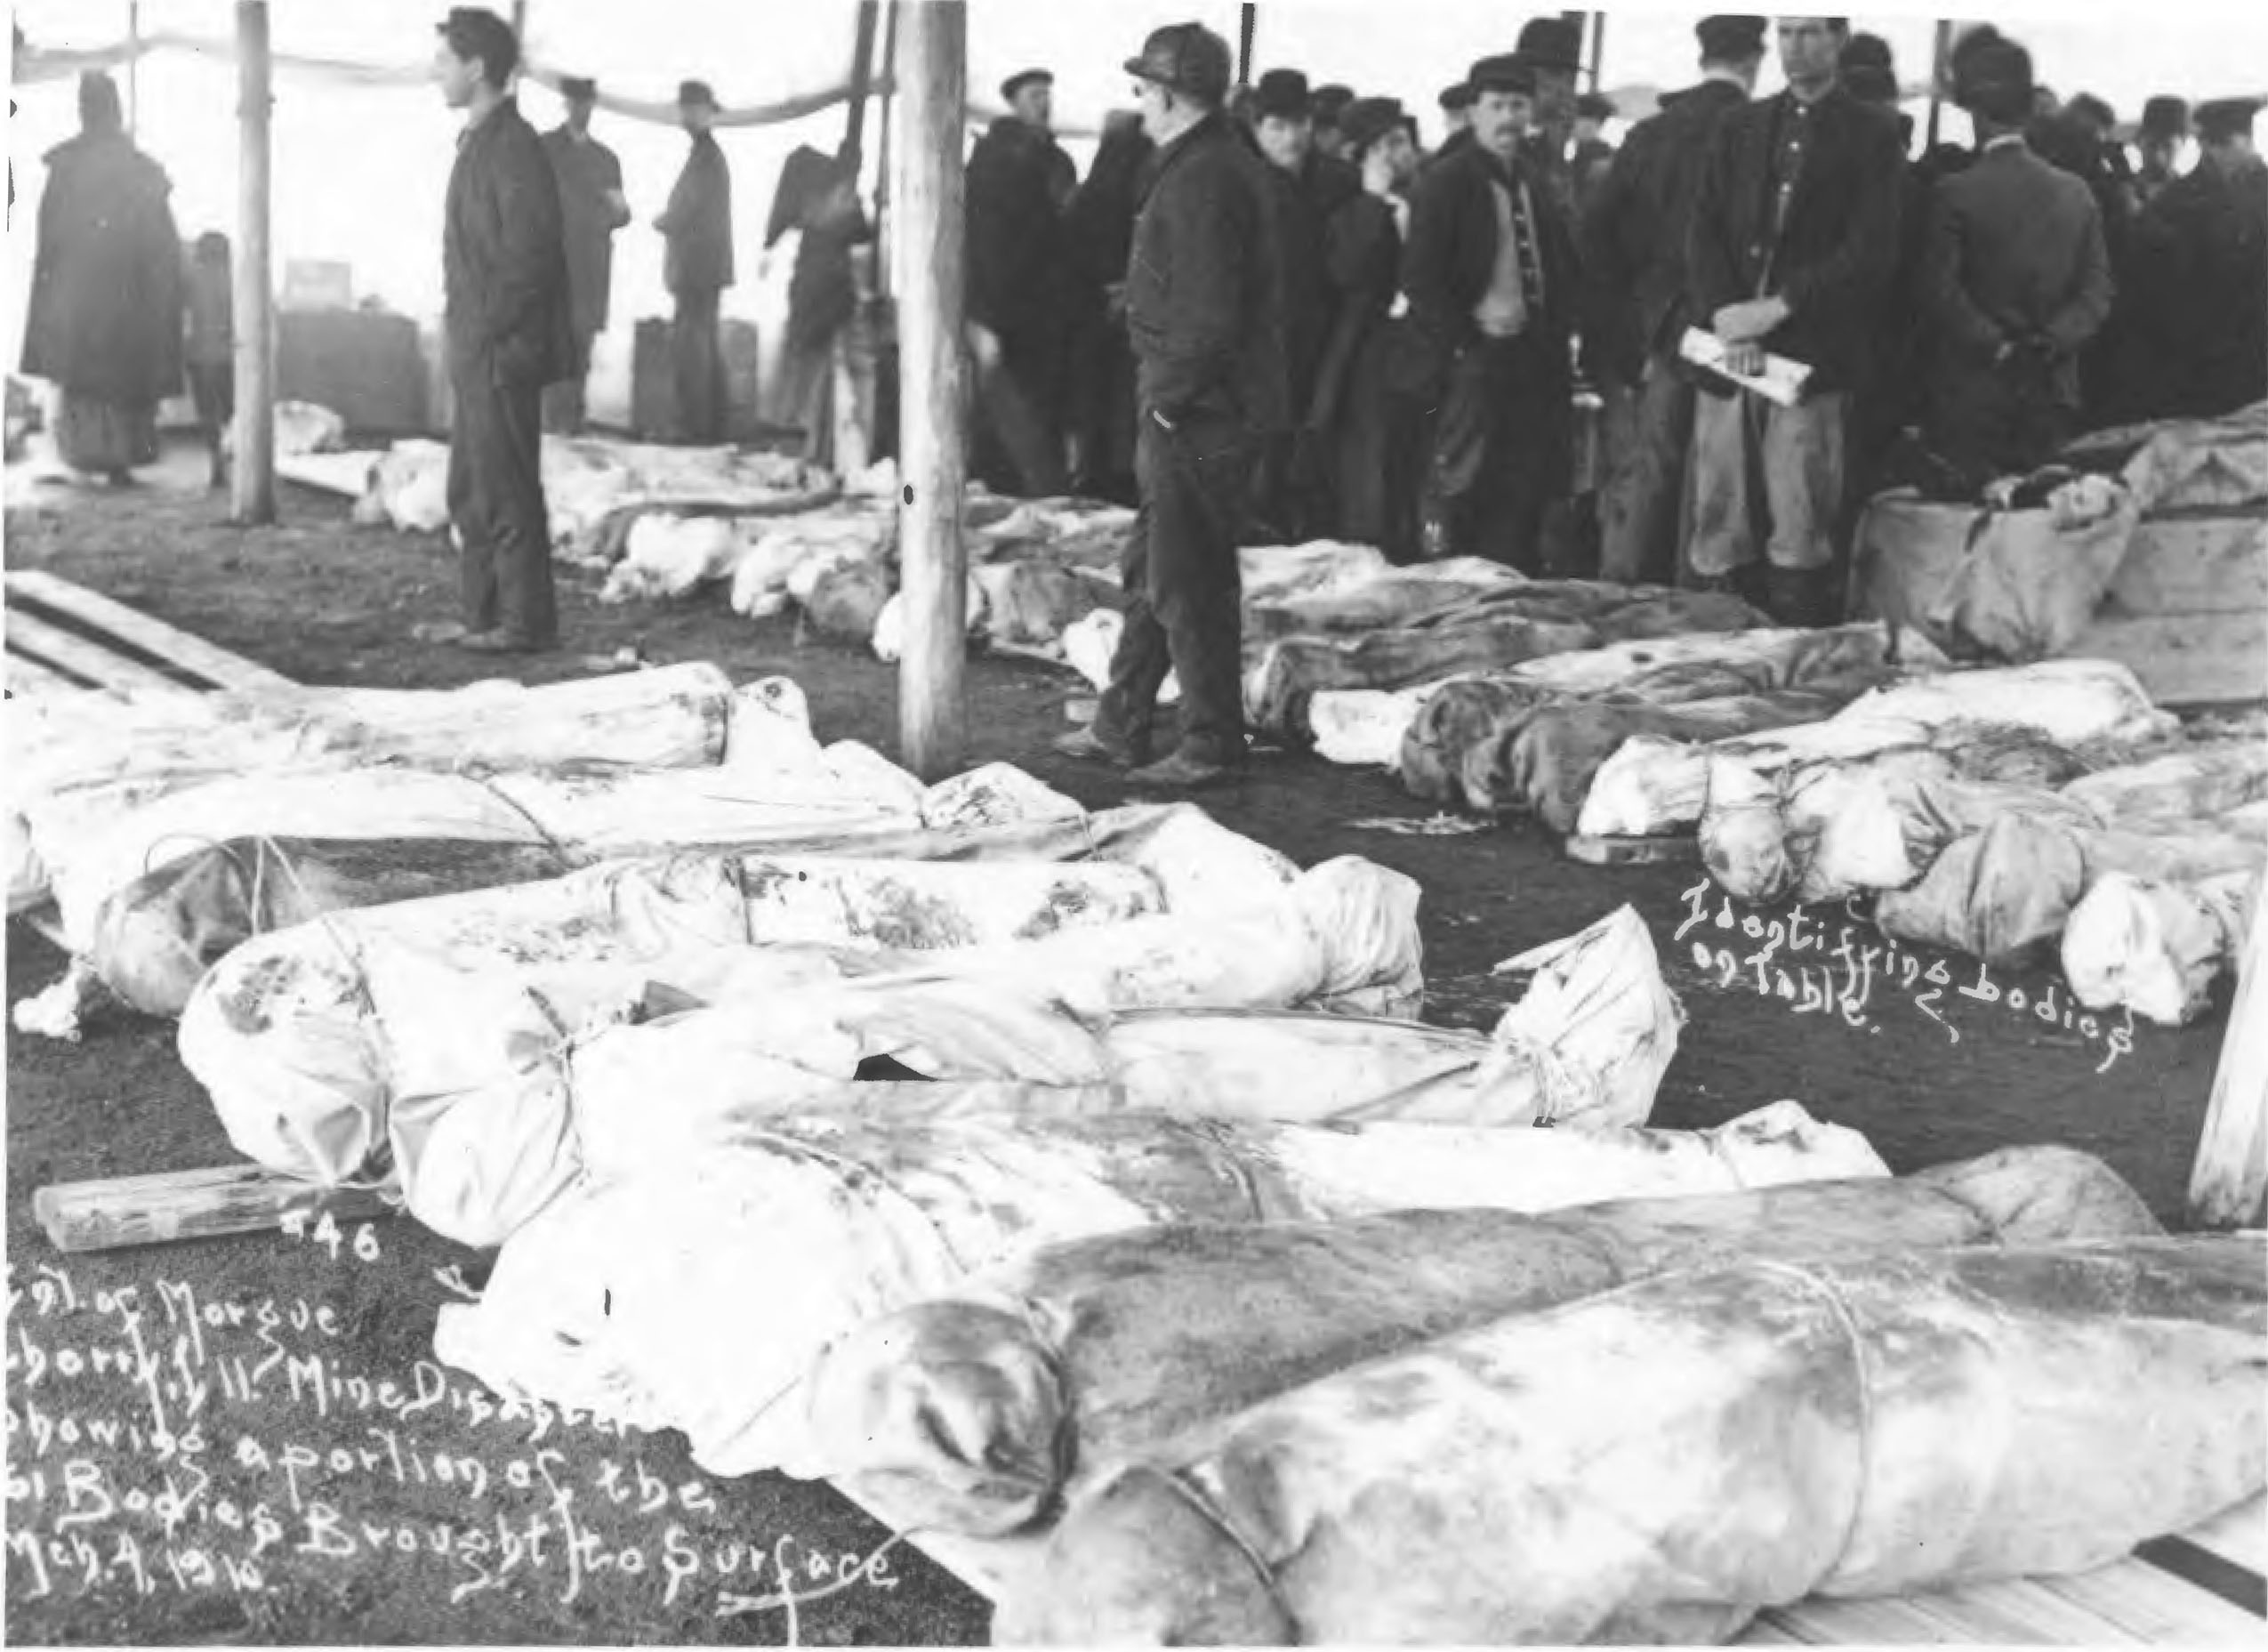 Photograph of bodies being identified after Cherry Mine Disaster, 1909.